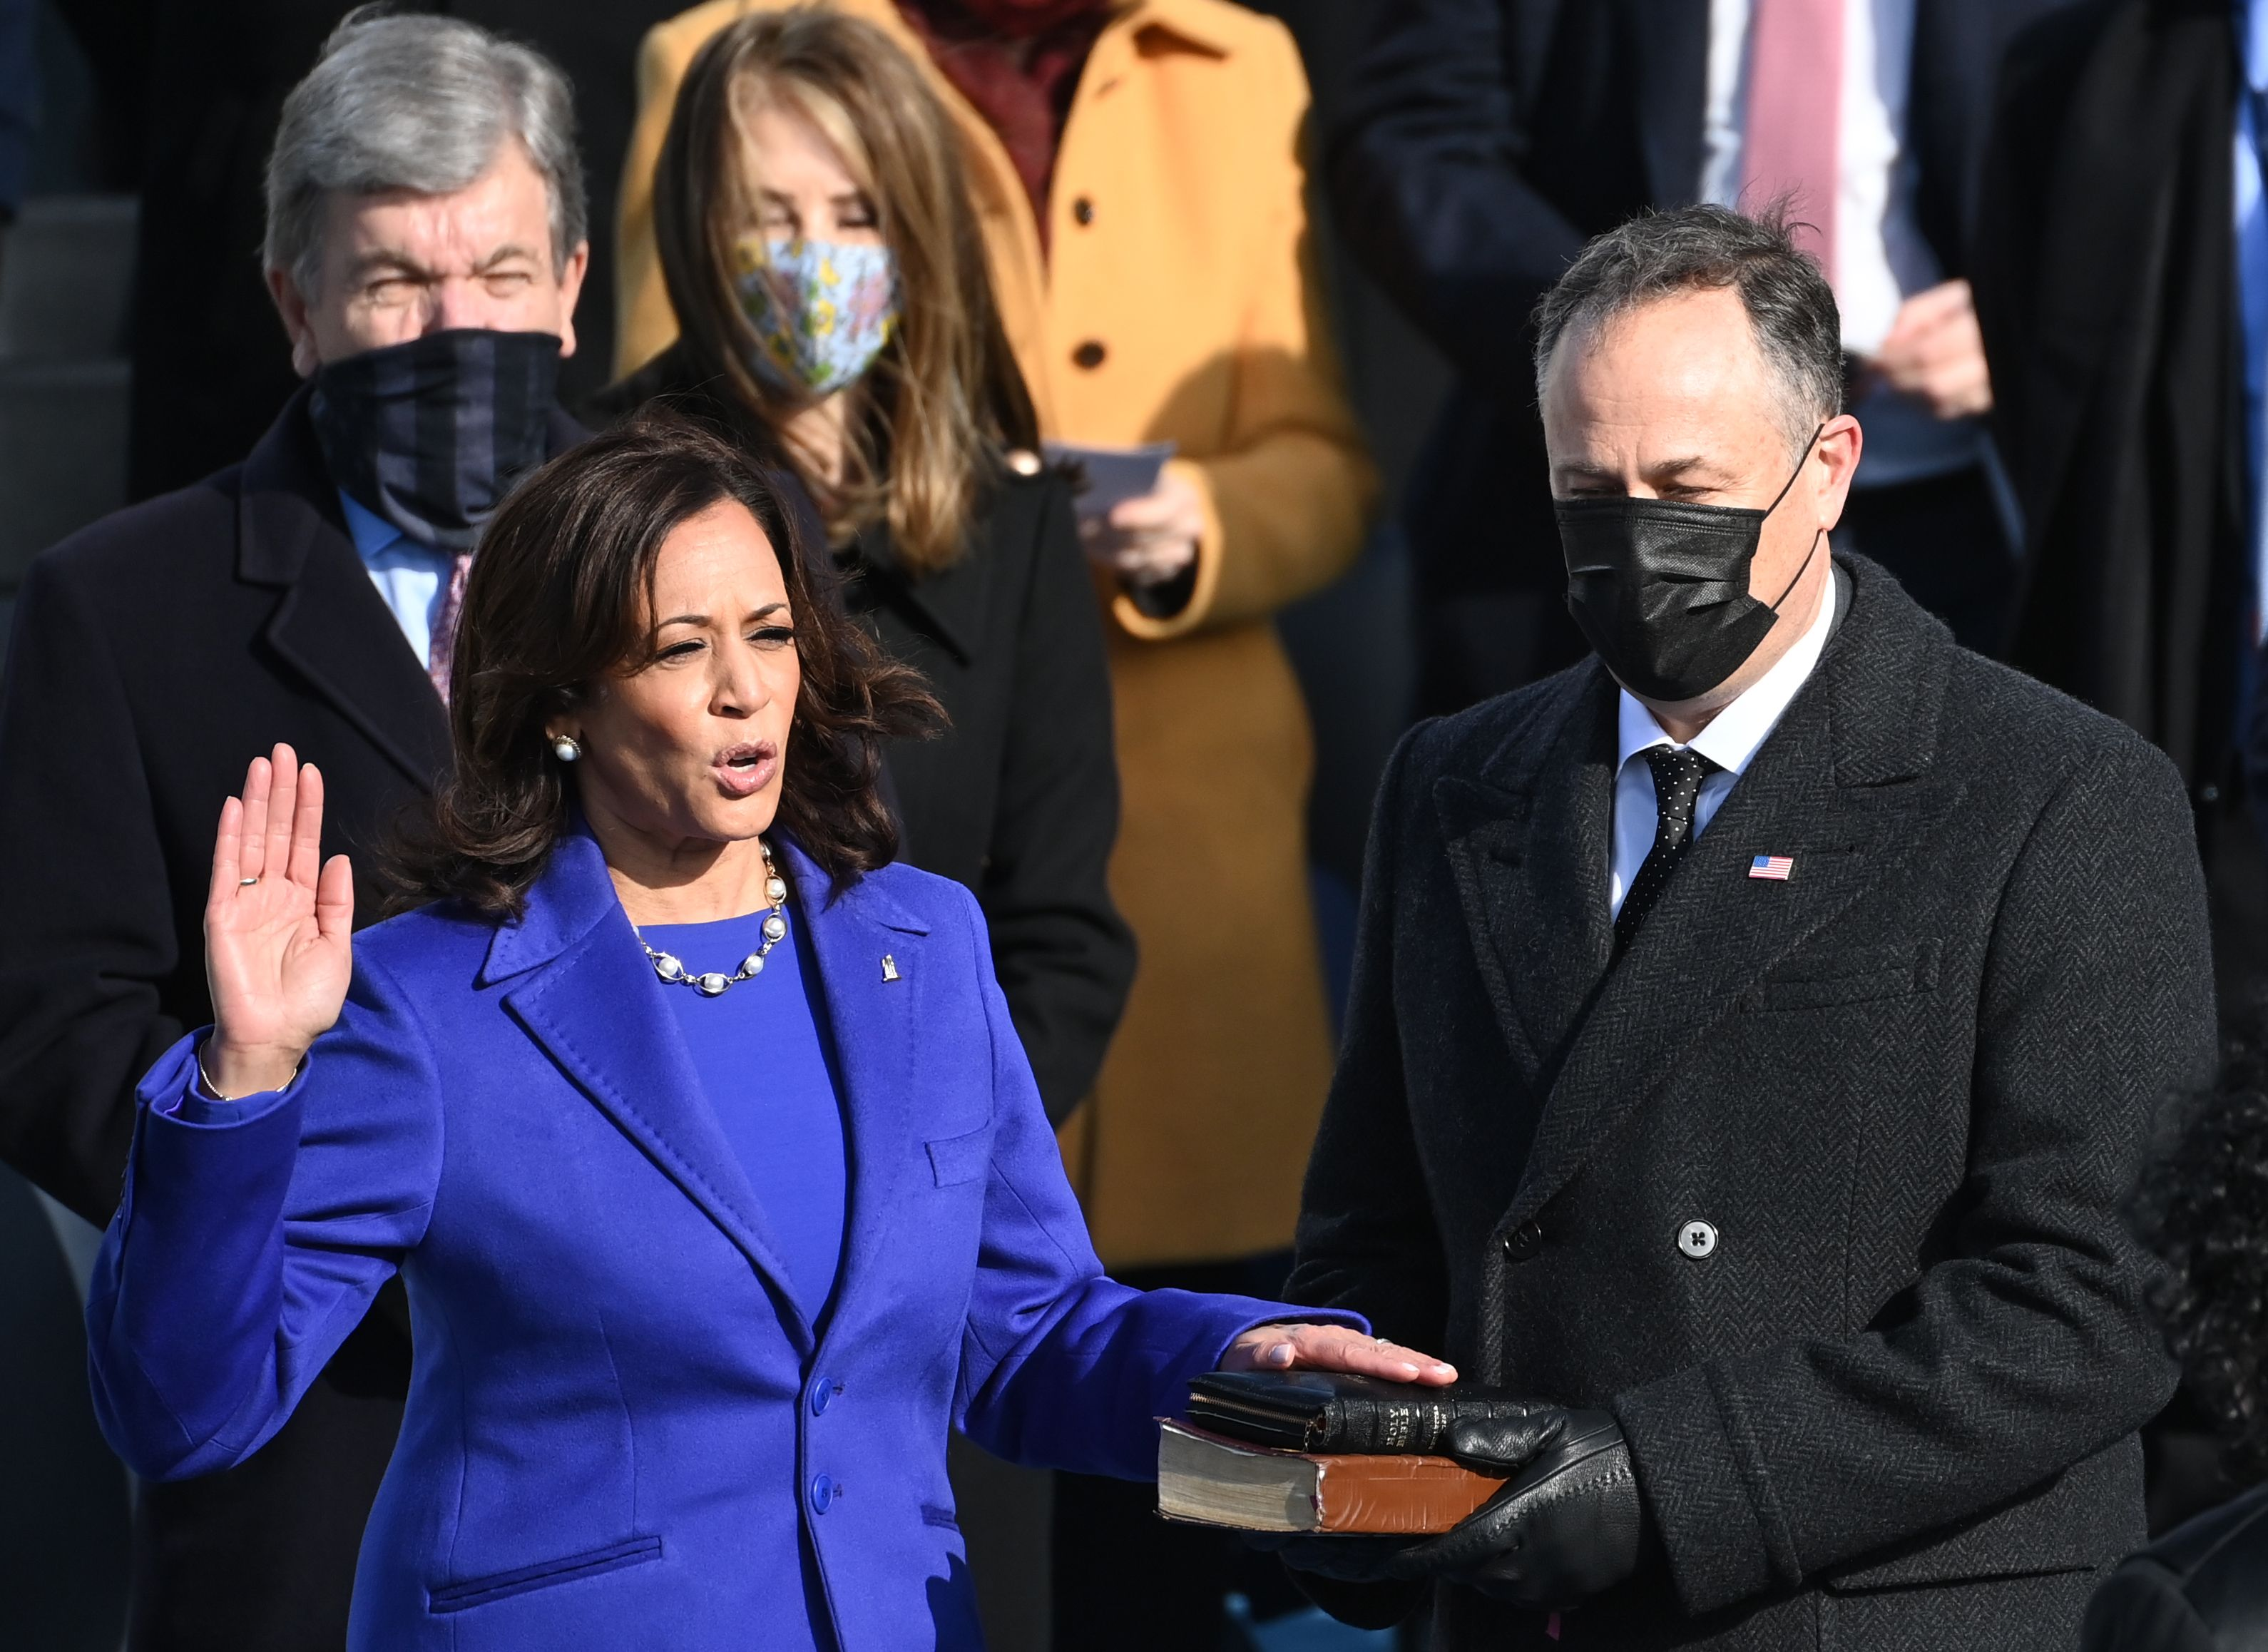 Kamala Harris pictured taking an oath during the Inauguration Day on January 21, 2021, at the U.S. Capitol grounds in Washington, D.C. | Photo: Getty Images